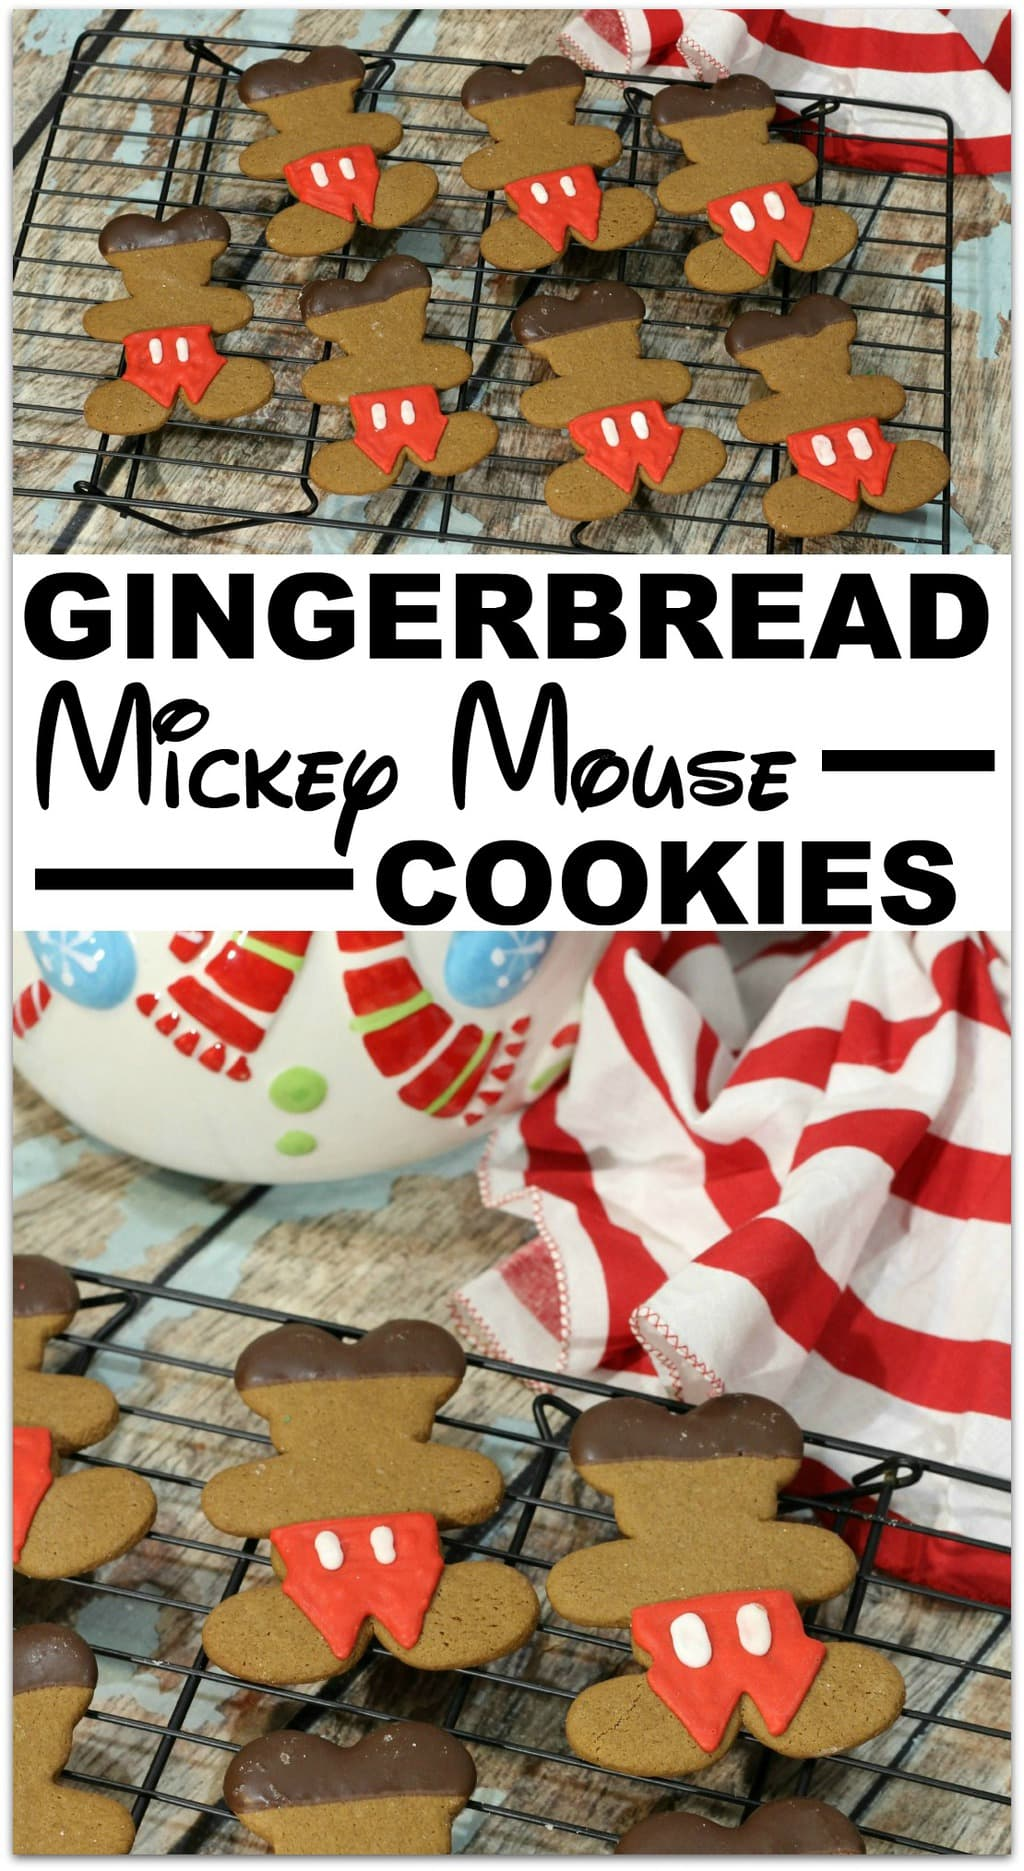 These Gingerbread Mickey Mouse Cookies are the perfect recipe for that class party! Who doesn't love Mickey Mouse? Cookies are the easiest dessert to make and transport! You'll be a rock star mom when this dessert shows up!